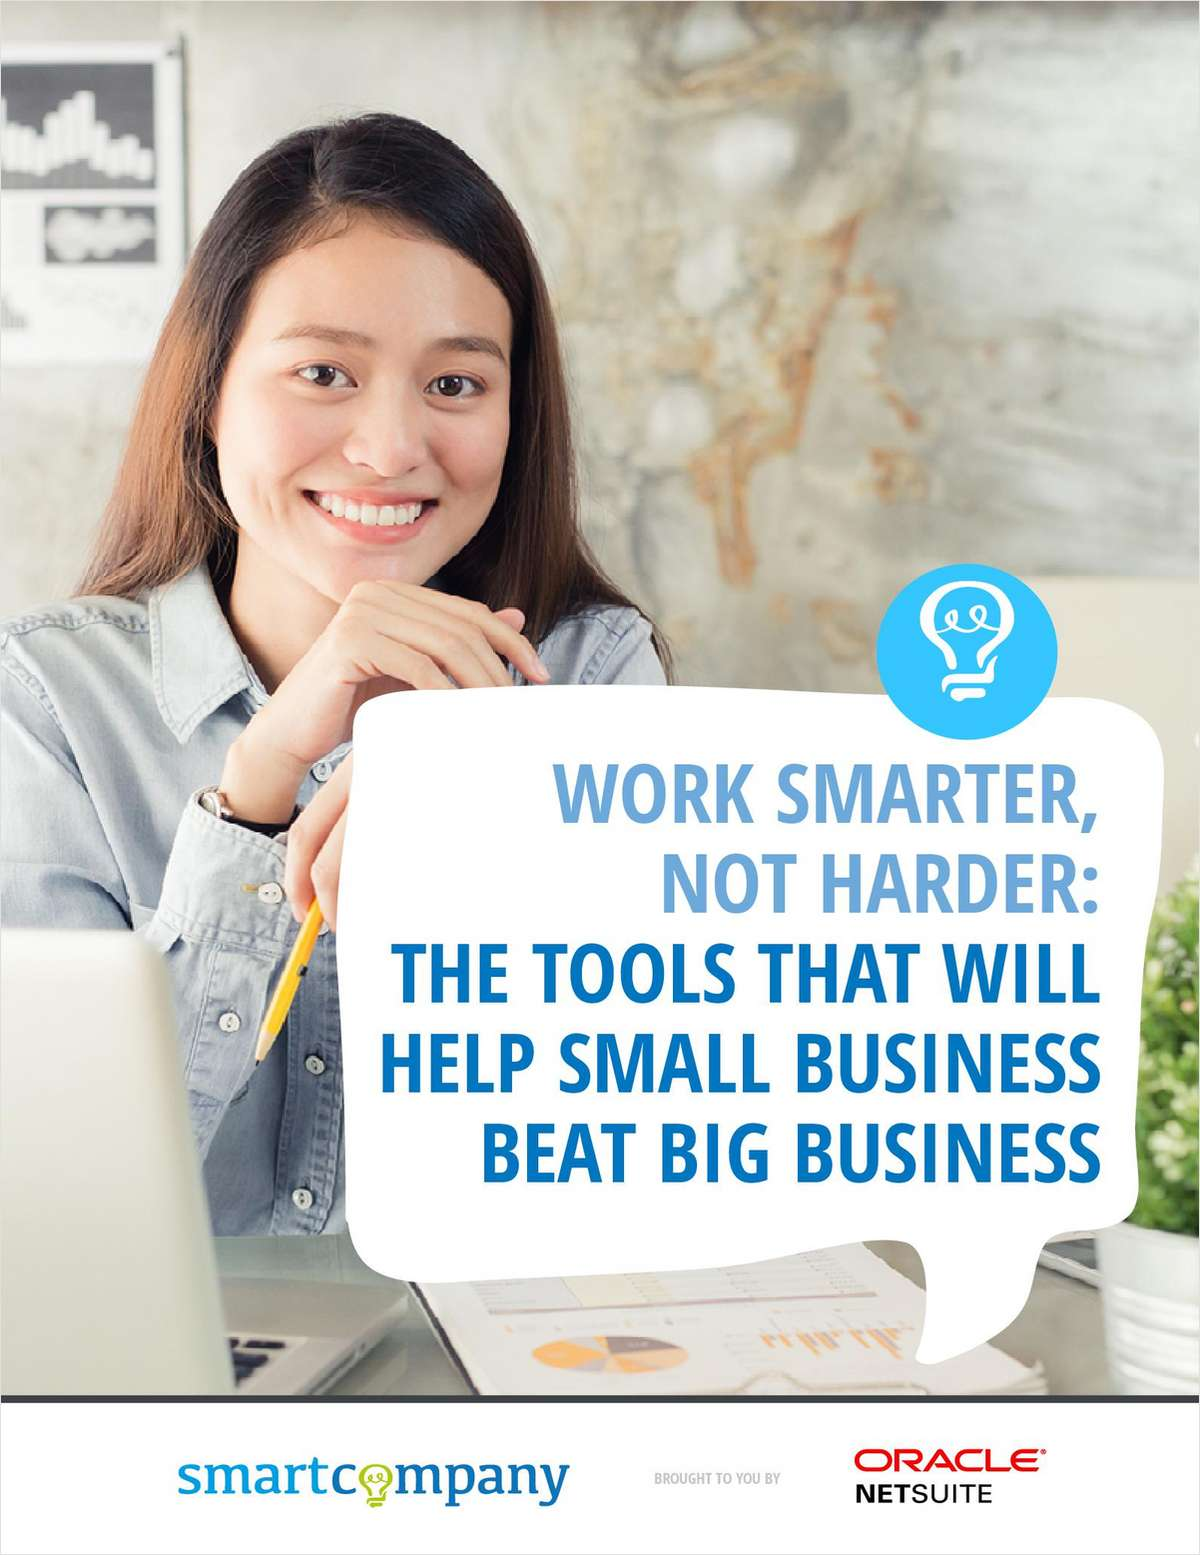 Work Smarter, Not Harder: The Tools that Will Help Small Business Beat Big Business